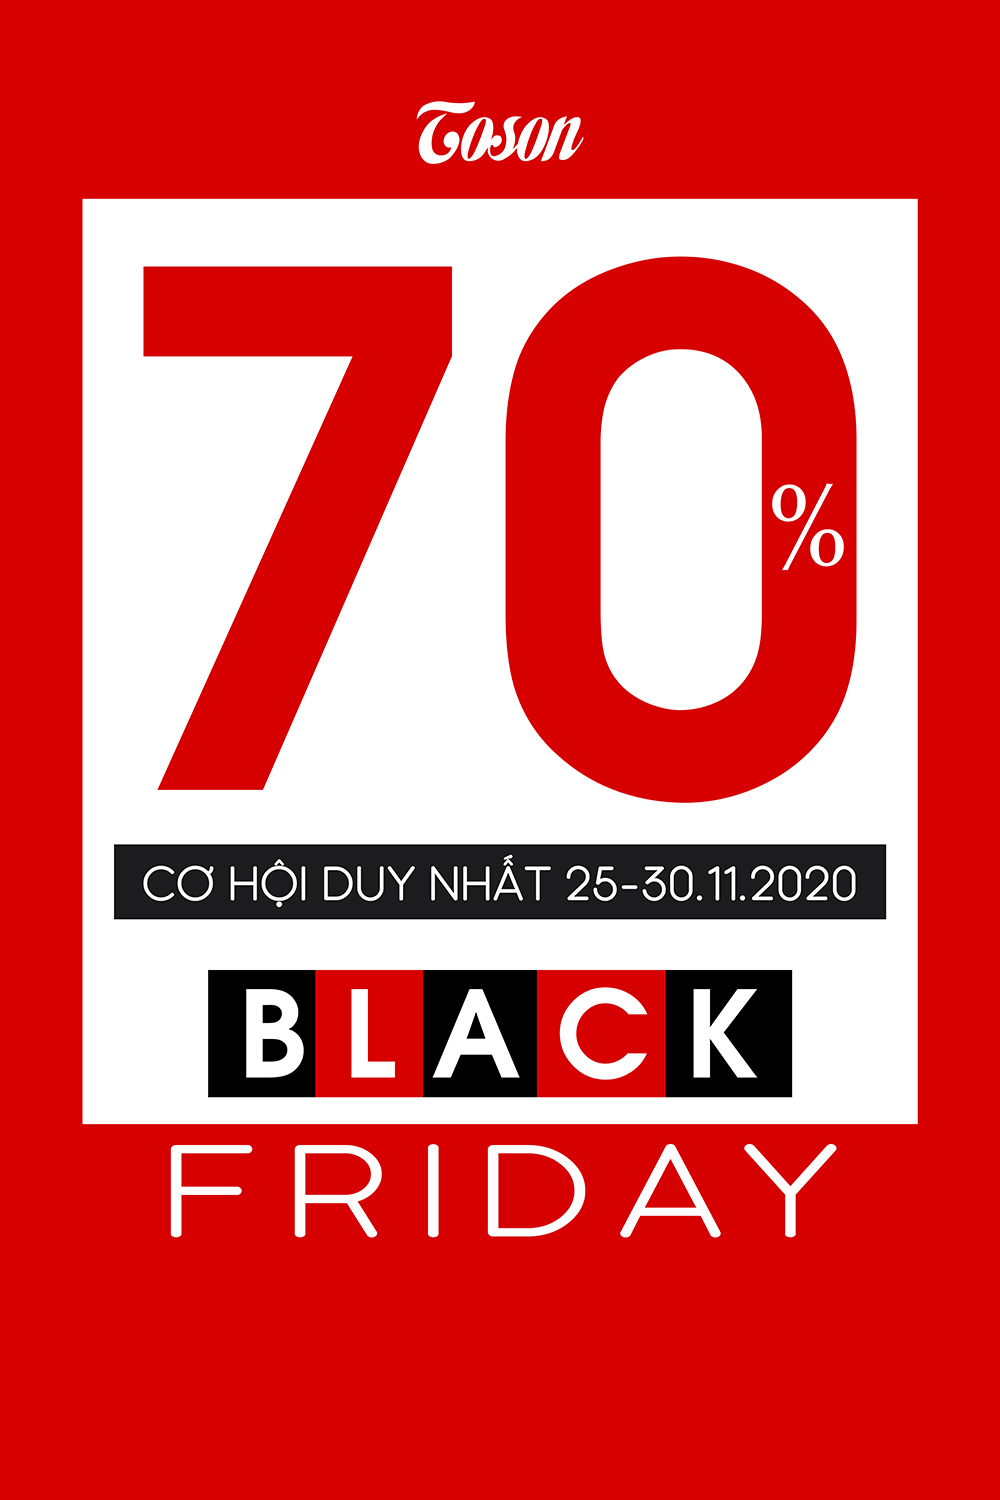 BLACK FRIDAY: 𝐒𝐀𝐋𝐄 𝐔𝐏 𝐓𝐎 𝟕𝟎% 𝐀𝐋𝐋 𝐈𝐓𝐄𝐌𝐒